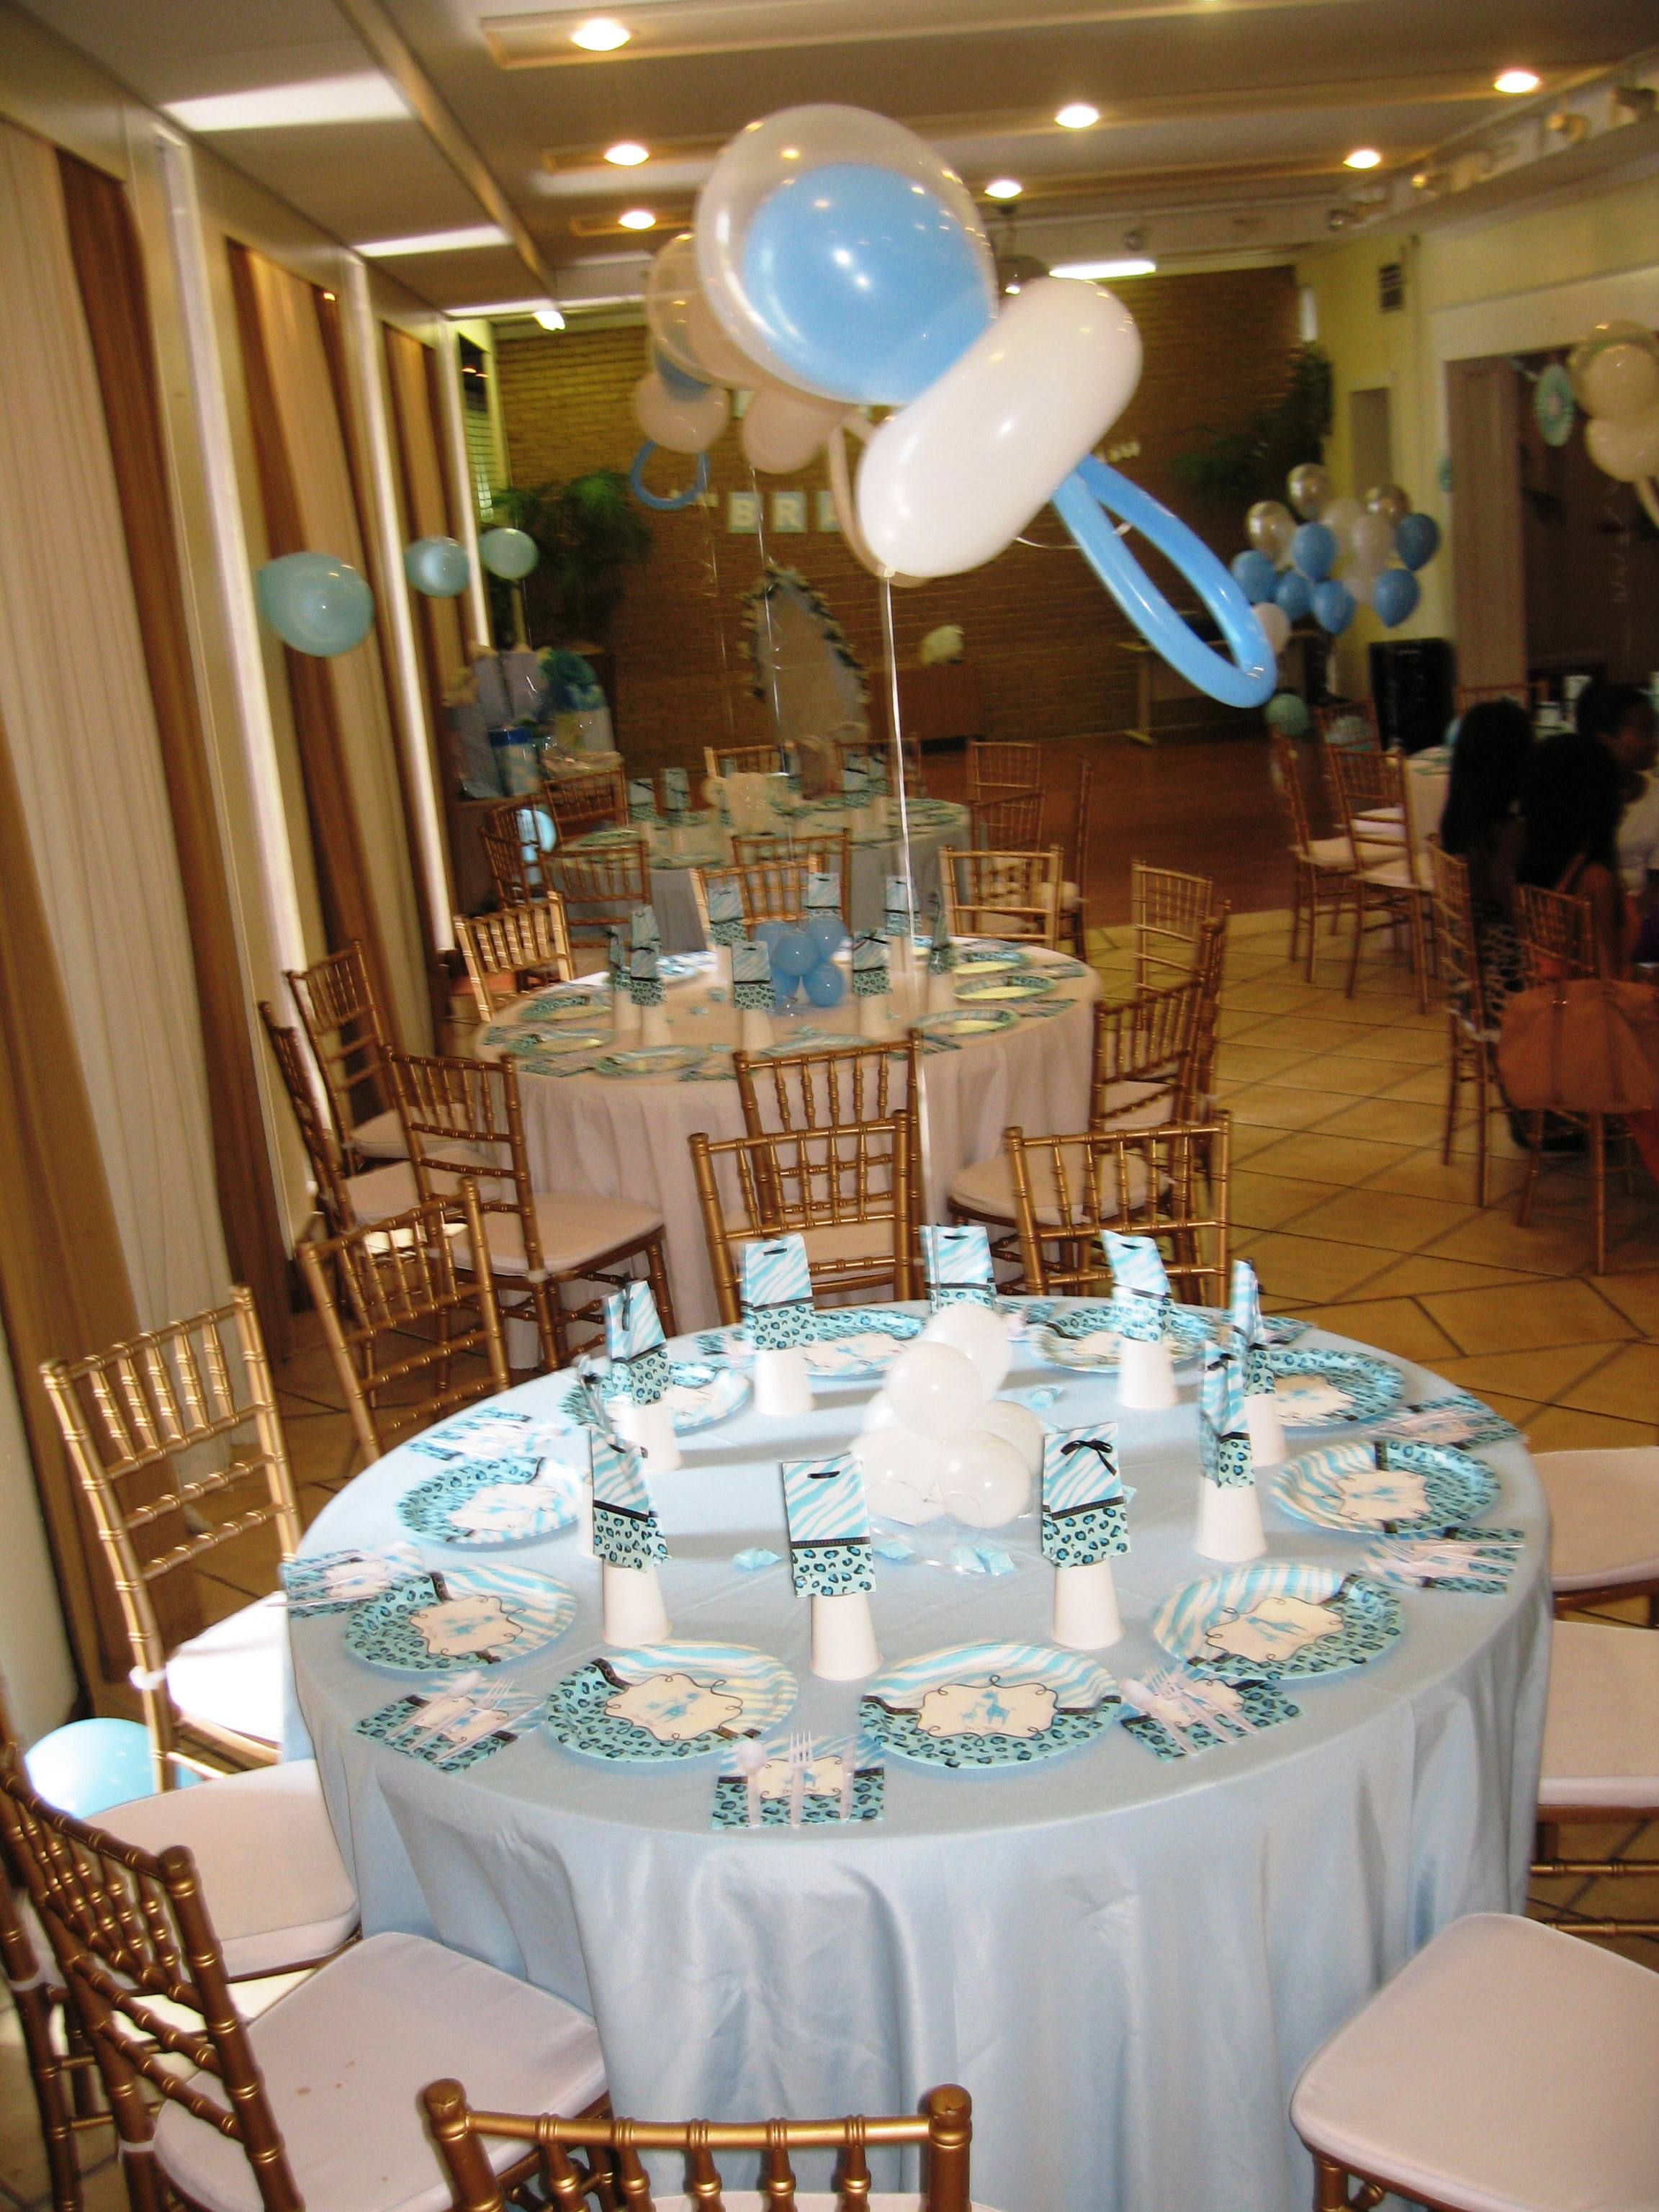 Baby shower table decor centerpieces table decor for Baby shower decoration centerpieces